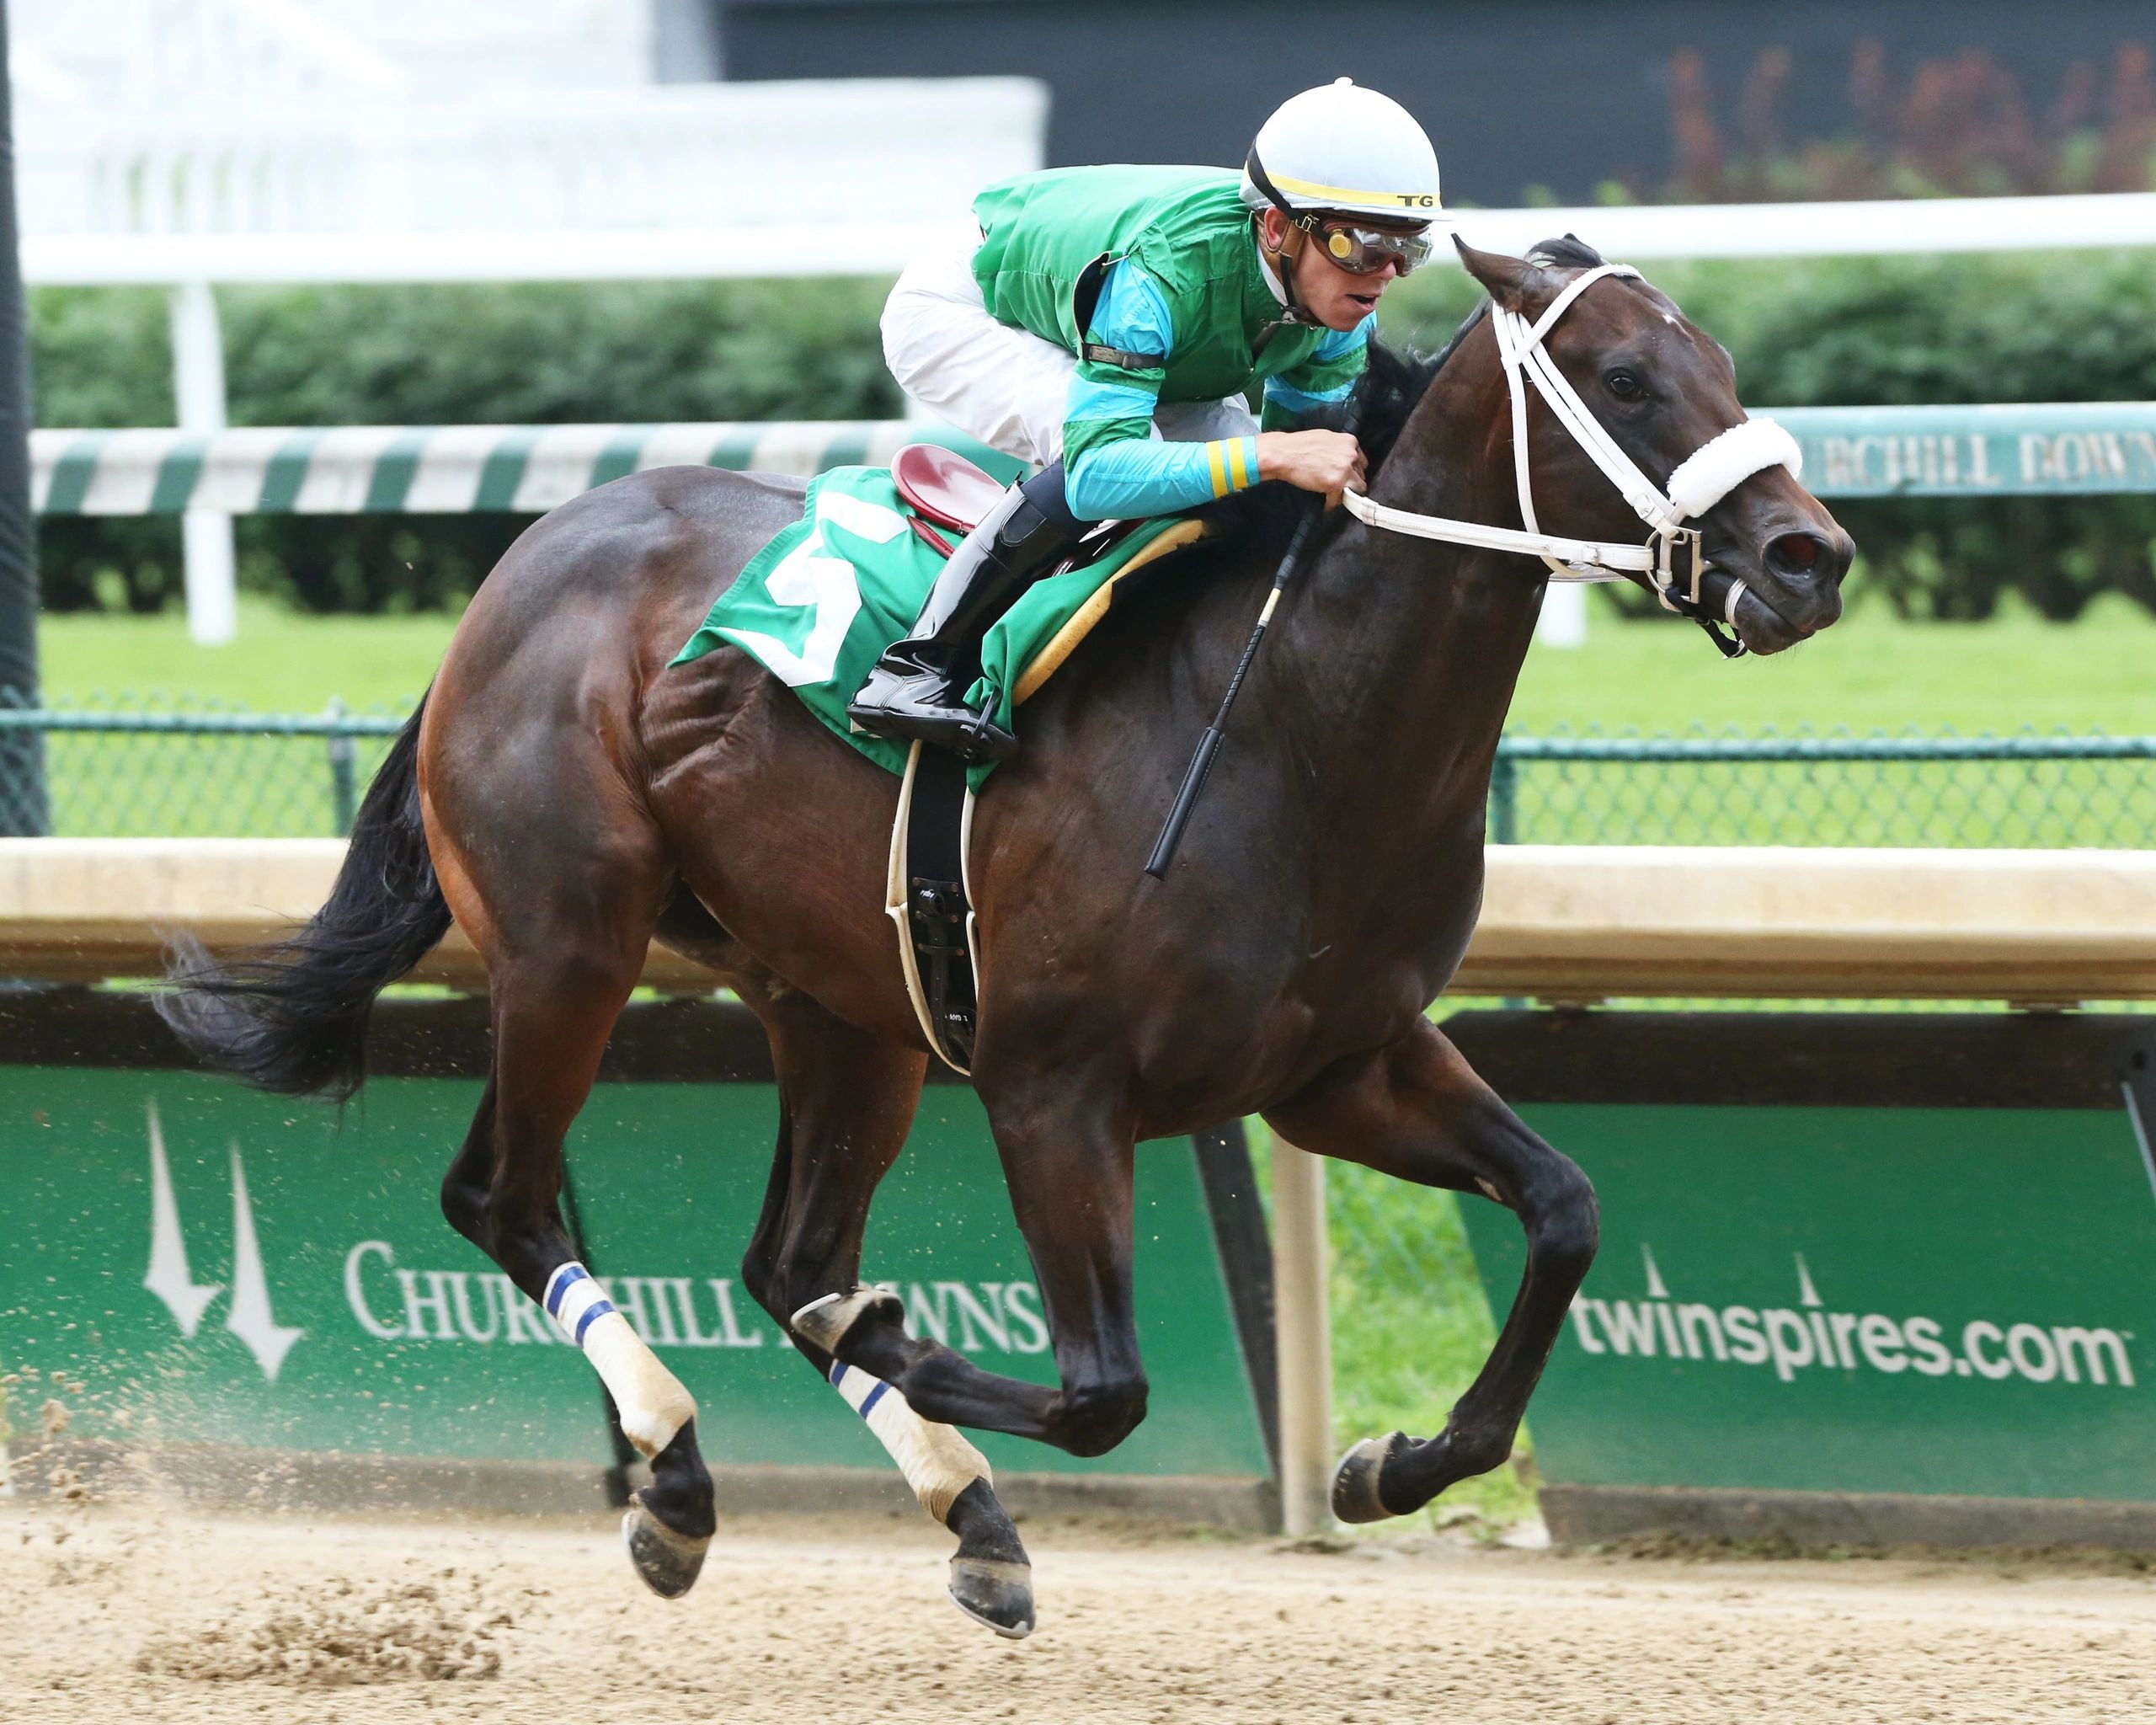 Hancock brothers could pull off Churchill stakes sweep